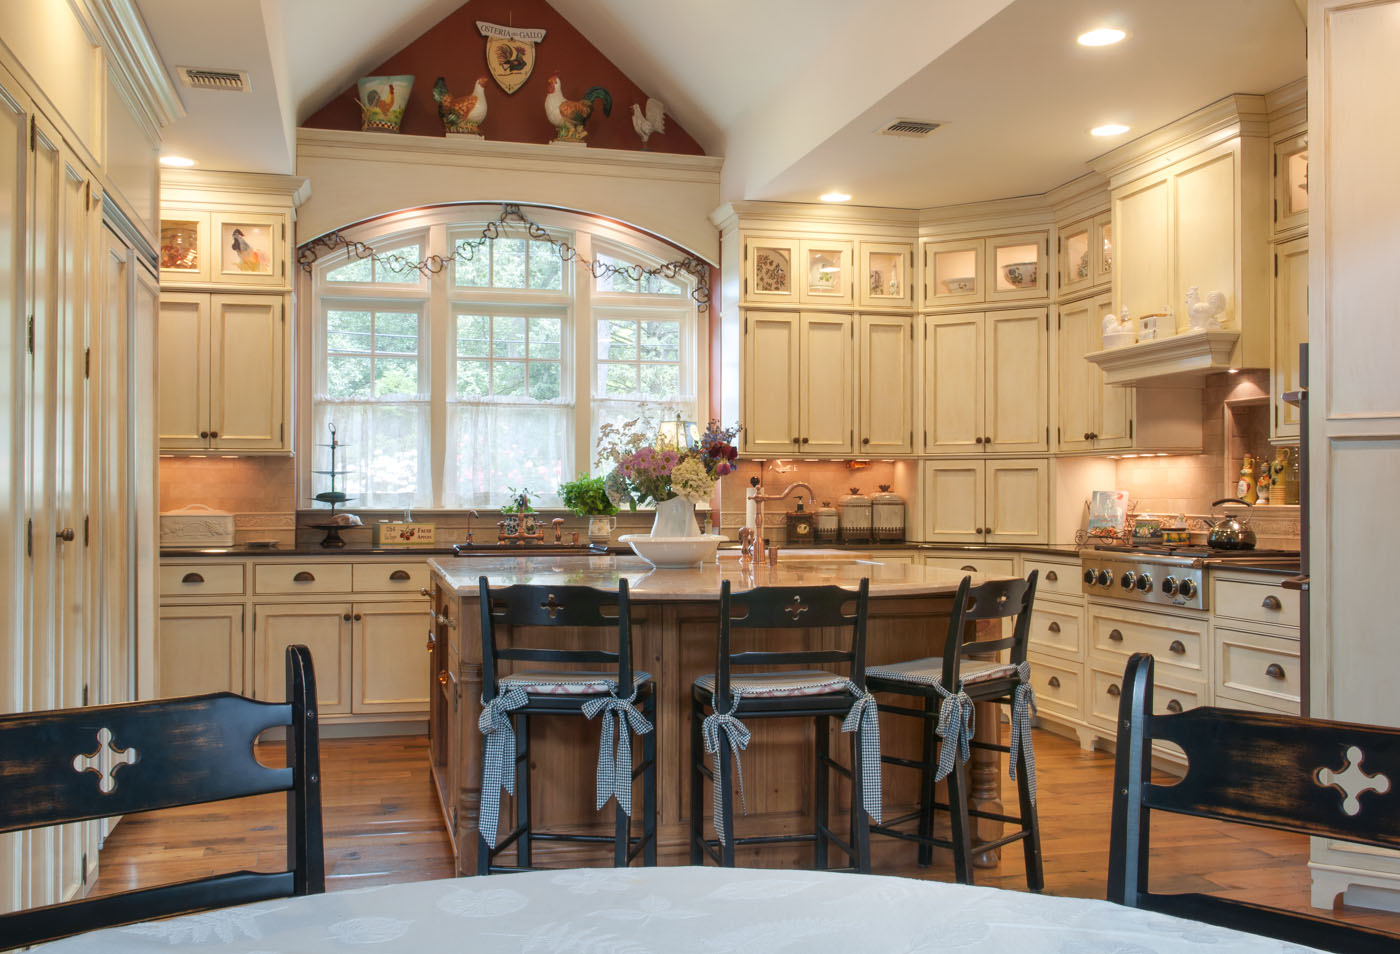 Interior of kitchen | Long Island | New York